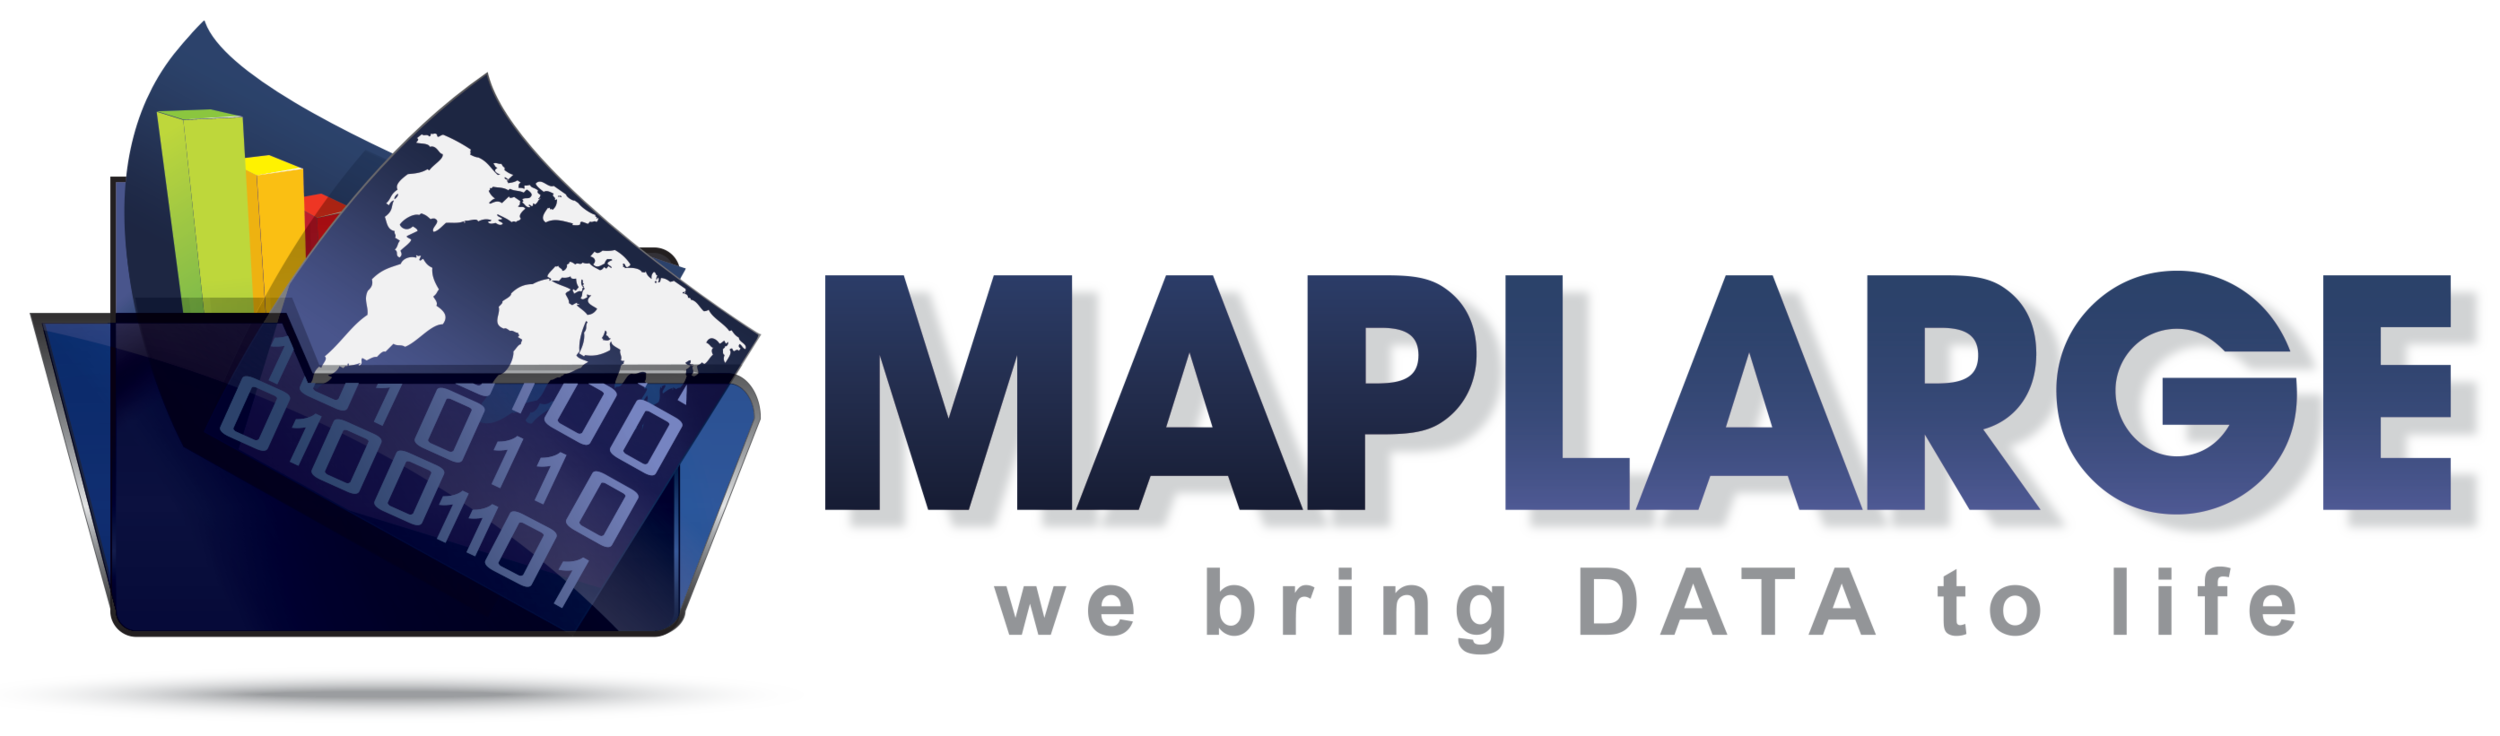 MapLarge-Logo-3-19-2014.png